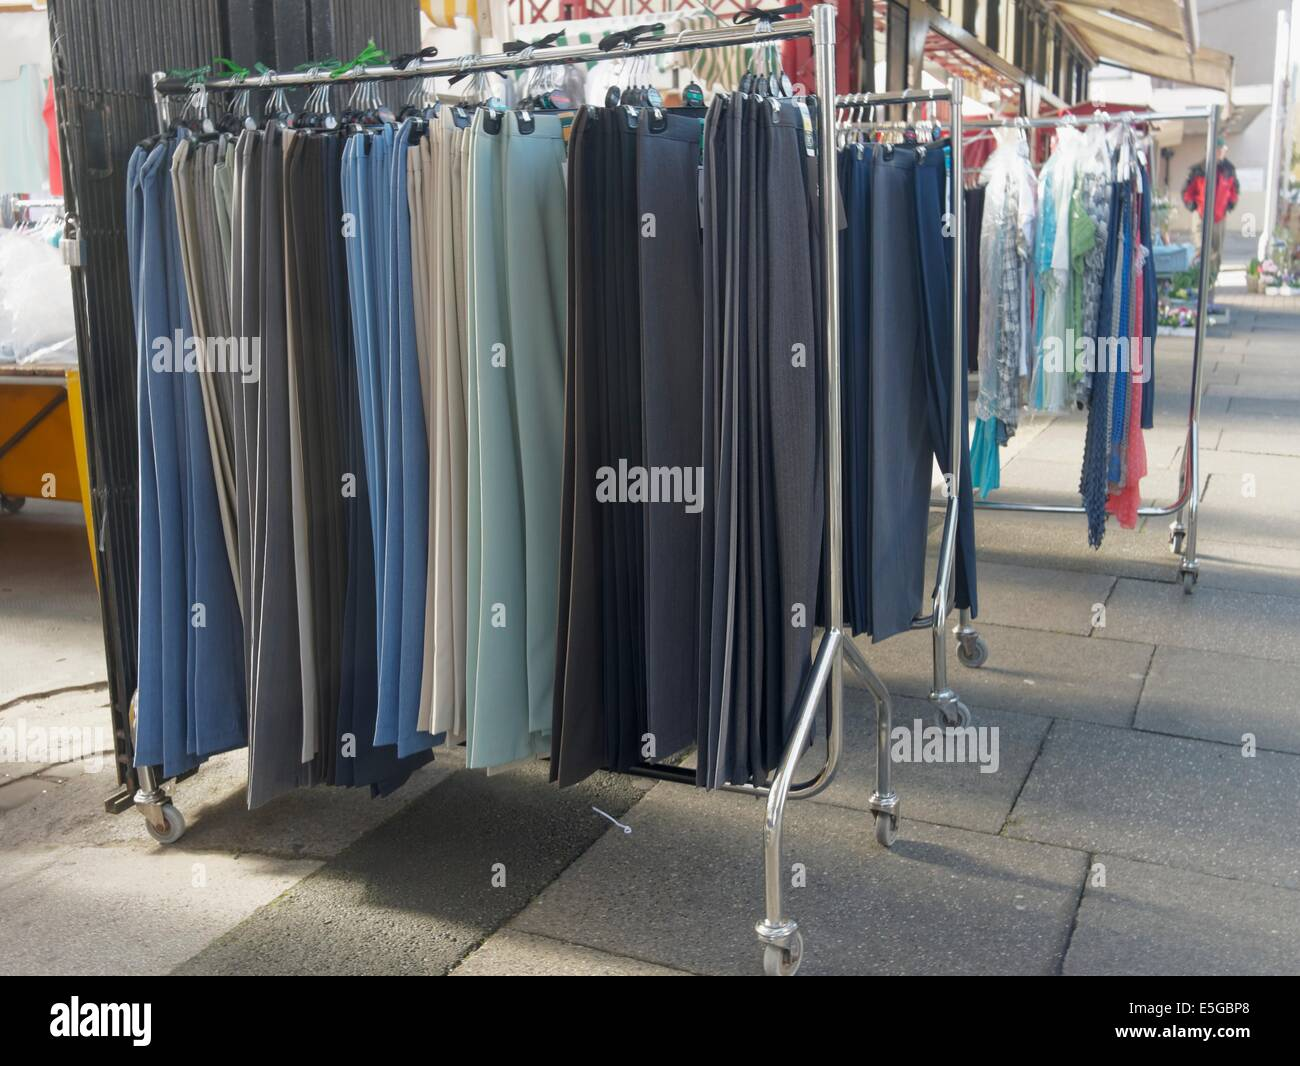 Skirts of many sizes for sale on a rack in the market - Stock Image